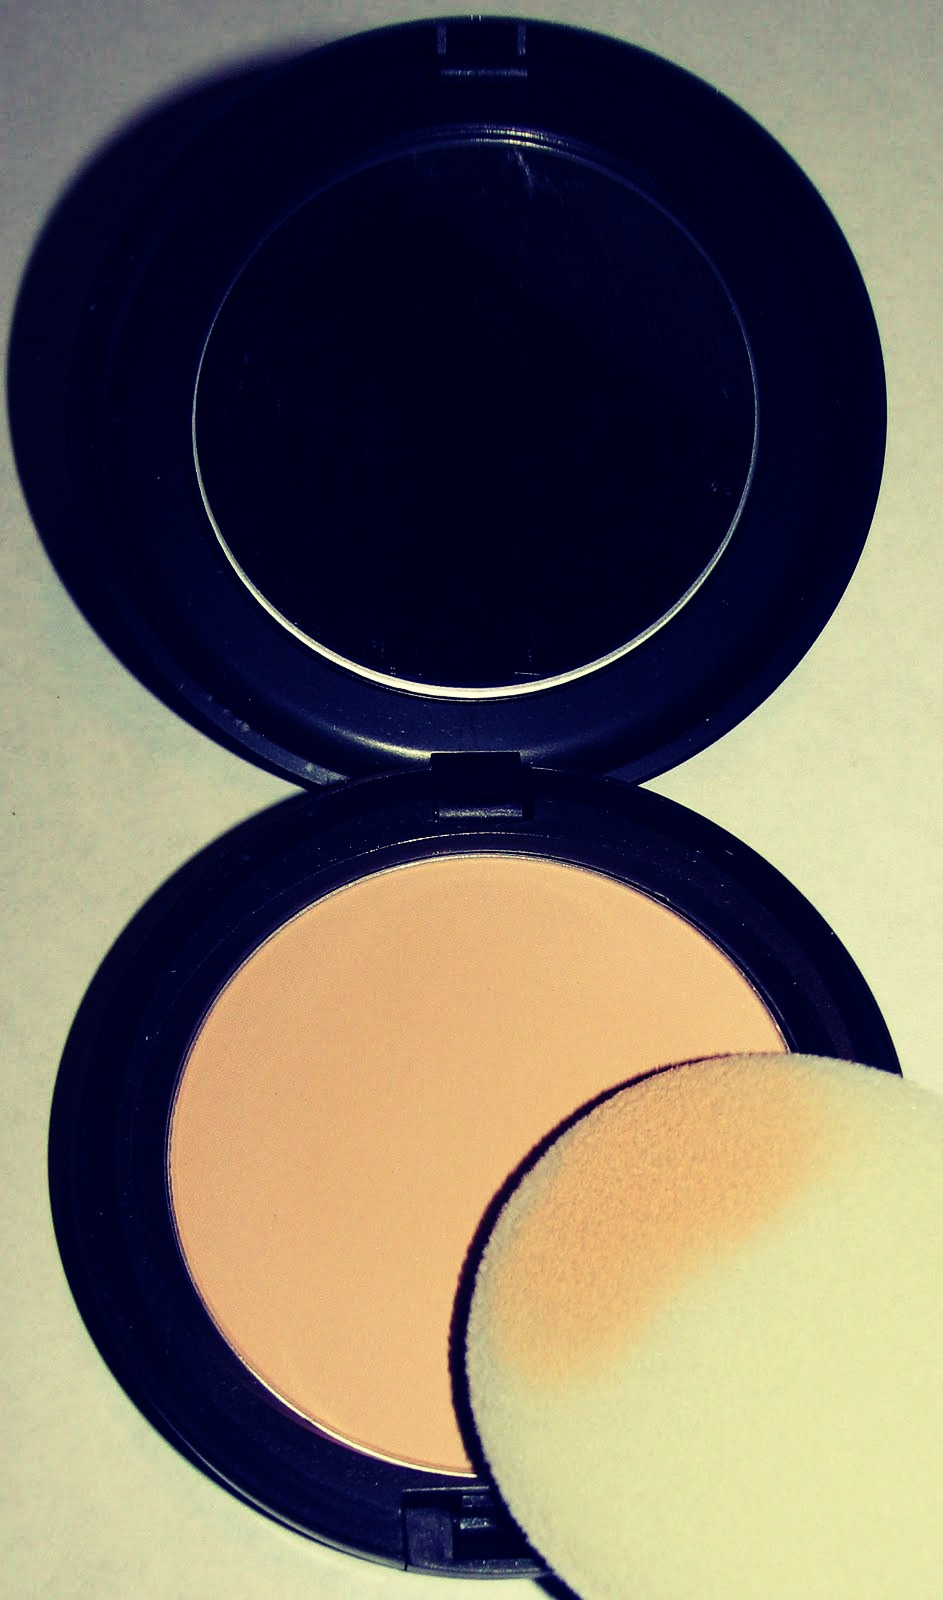 5) If you have oily skin then set your makeup with a powder for an all over soft, eggshell finish!